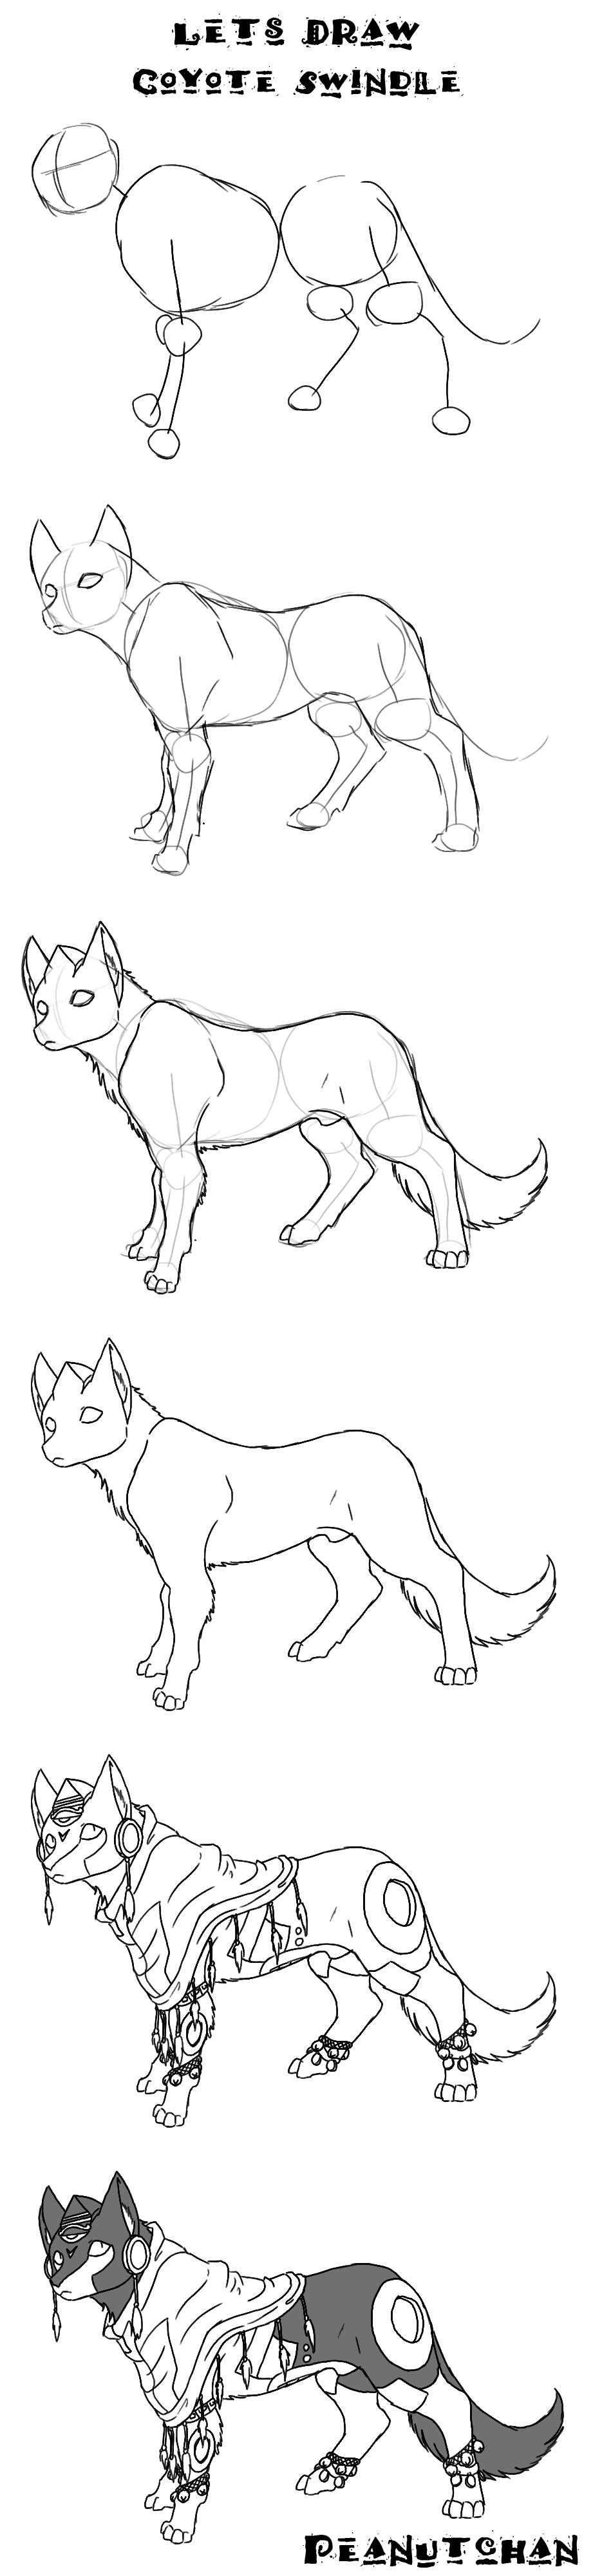 Uncategorized How To Draw A Coyote Step By Step lets draw coyote swindle by godformers on deviantart godformers